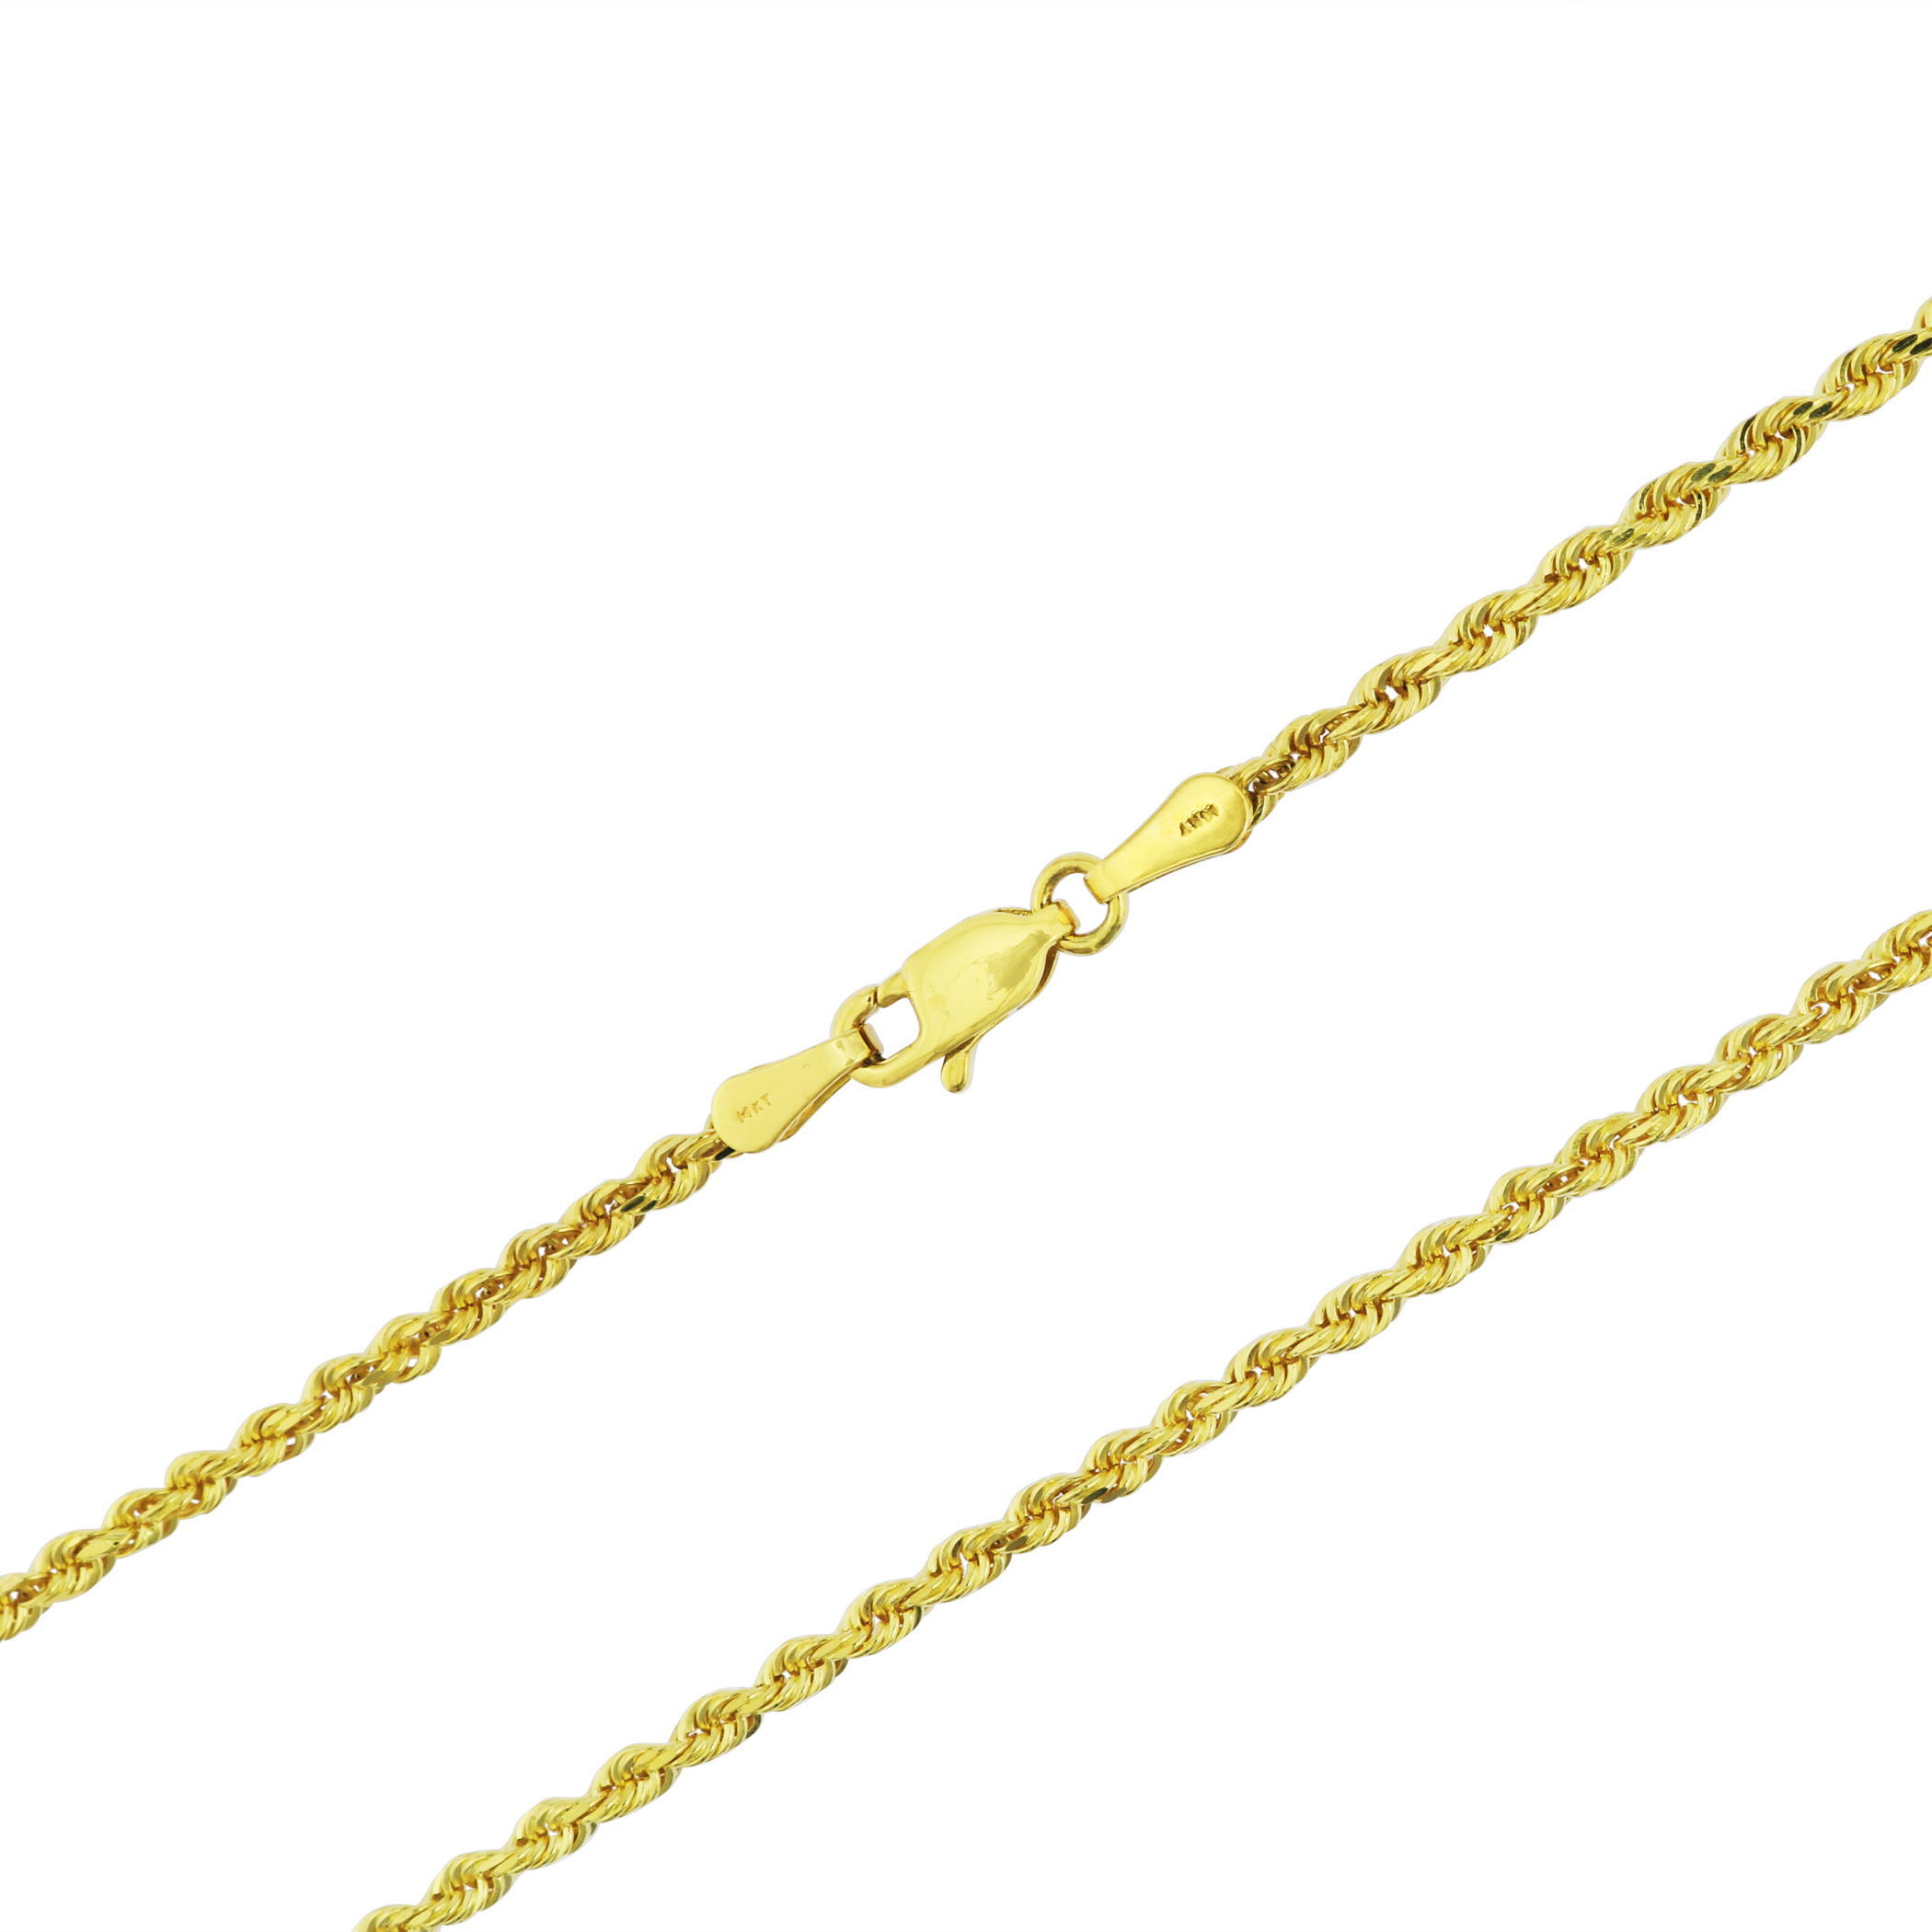 Real-14K-Yellow-Gold-2-5mm-Diamond-Cut-Rope-Chain-Link-Bracelet-Anklet-7-034-8-034-9-034 thumbnail 23